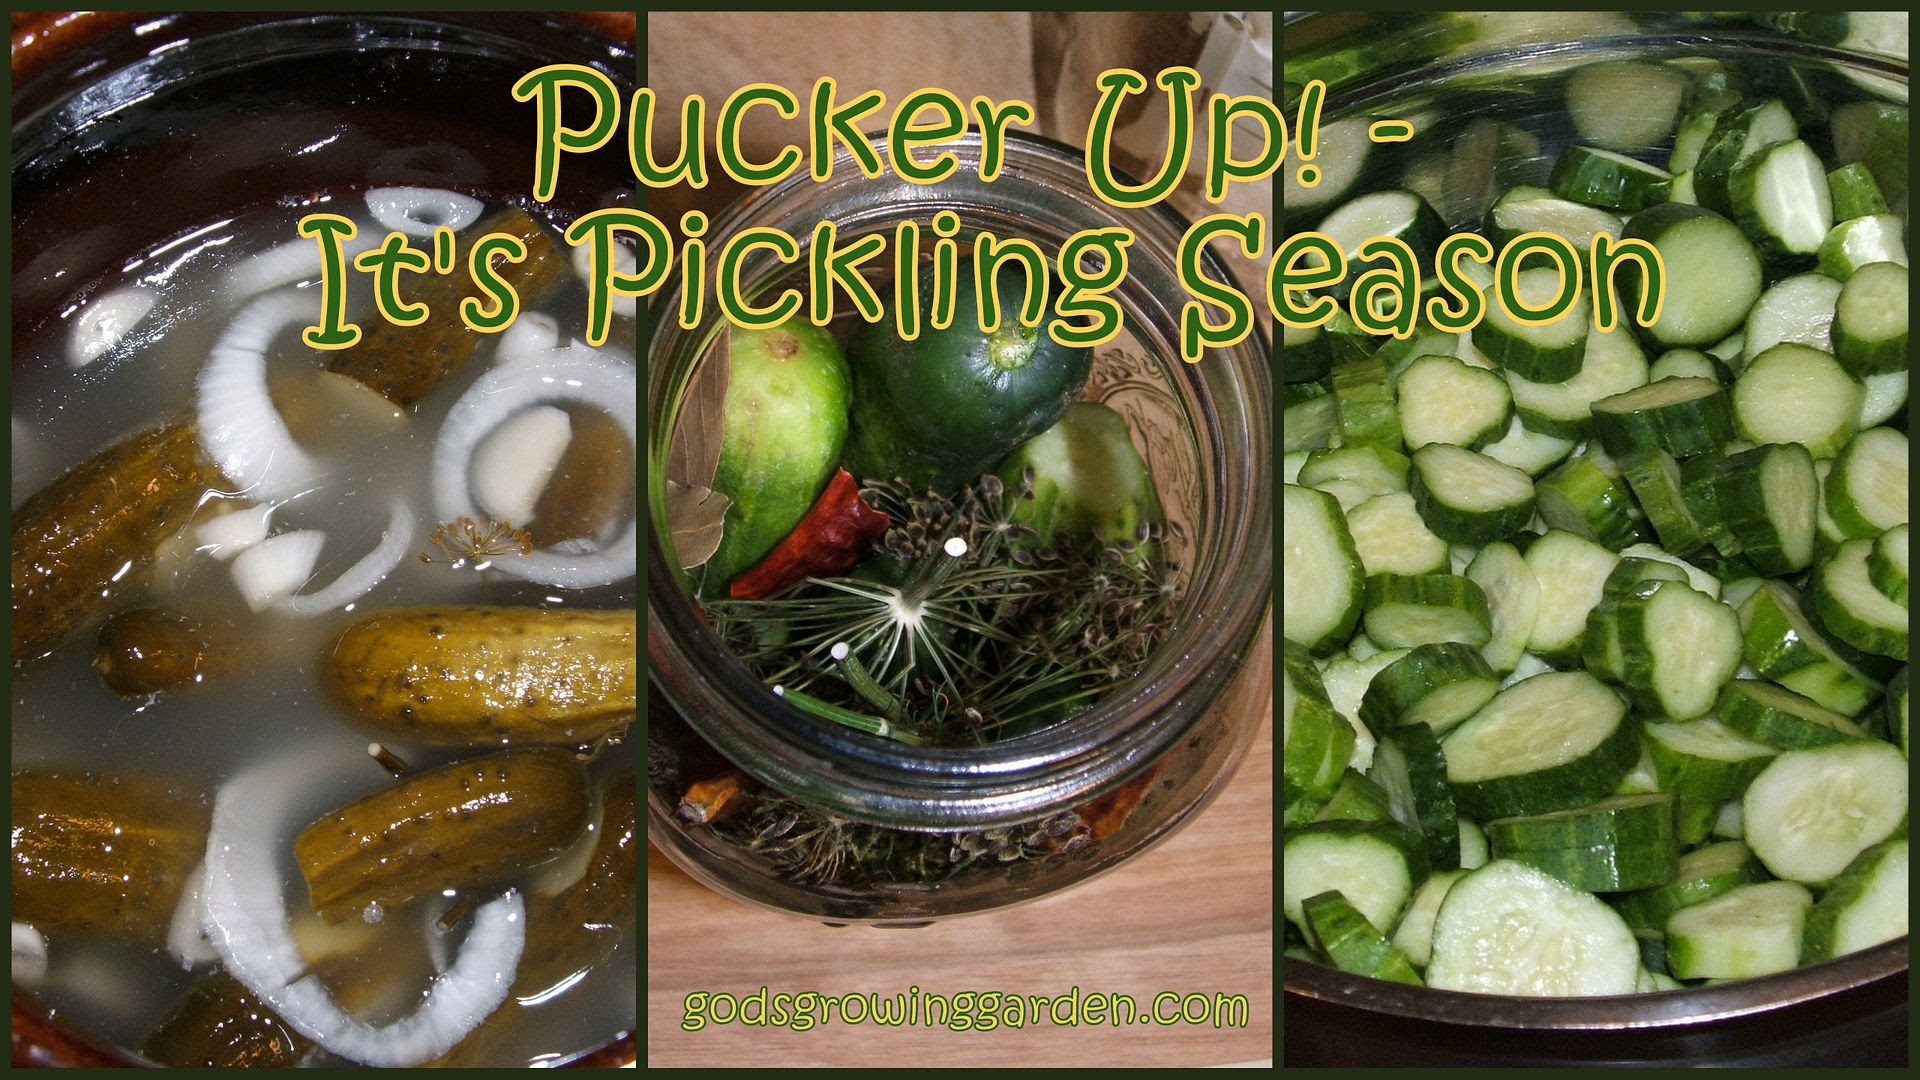 Pickles by Angie Ouellette-Tower for godsgrowinggarden.com photo BlogStuff_zpsc34aae84.jpg